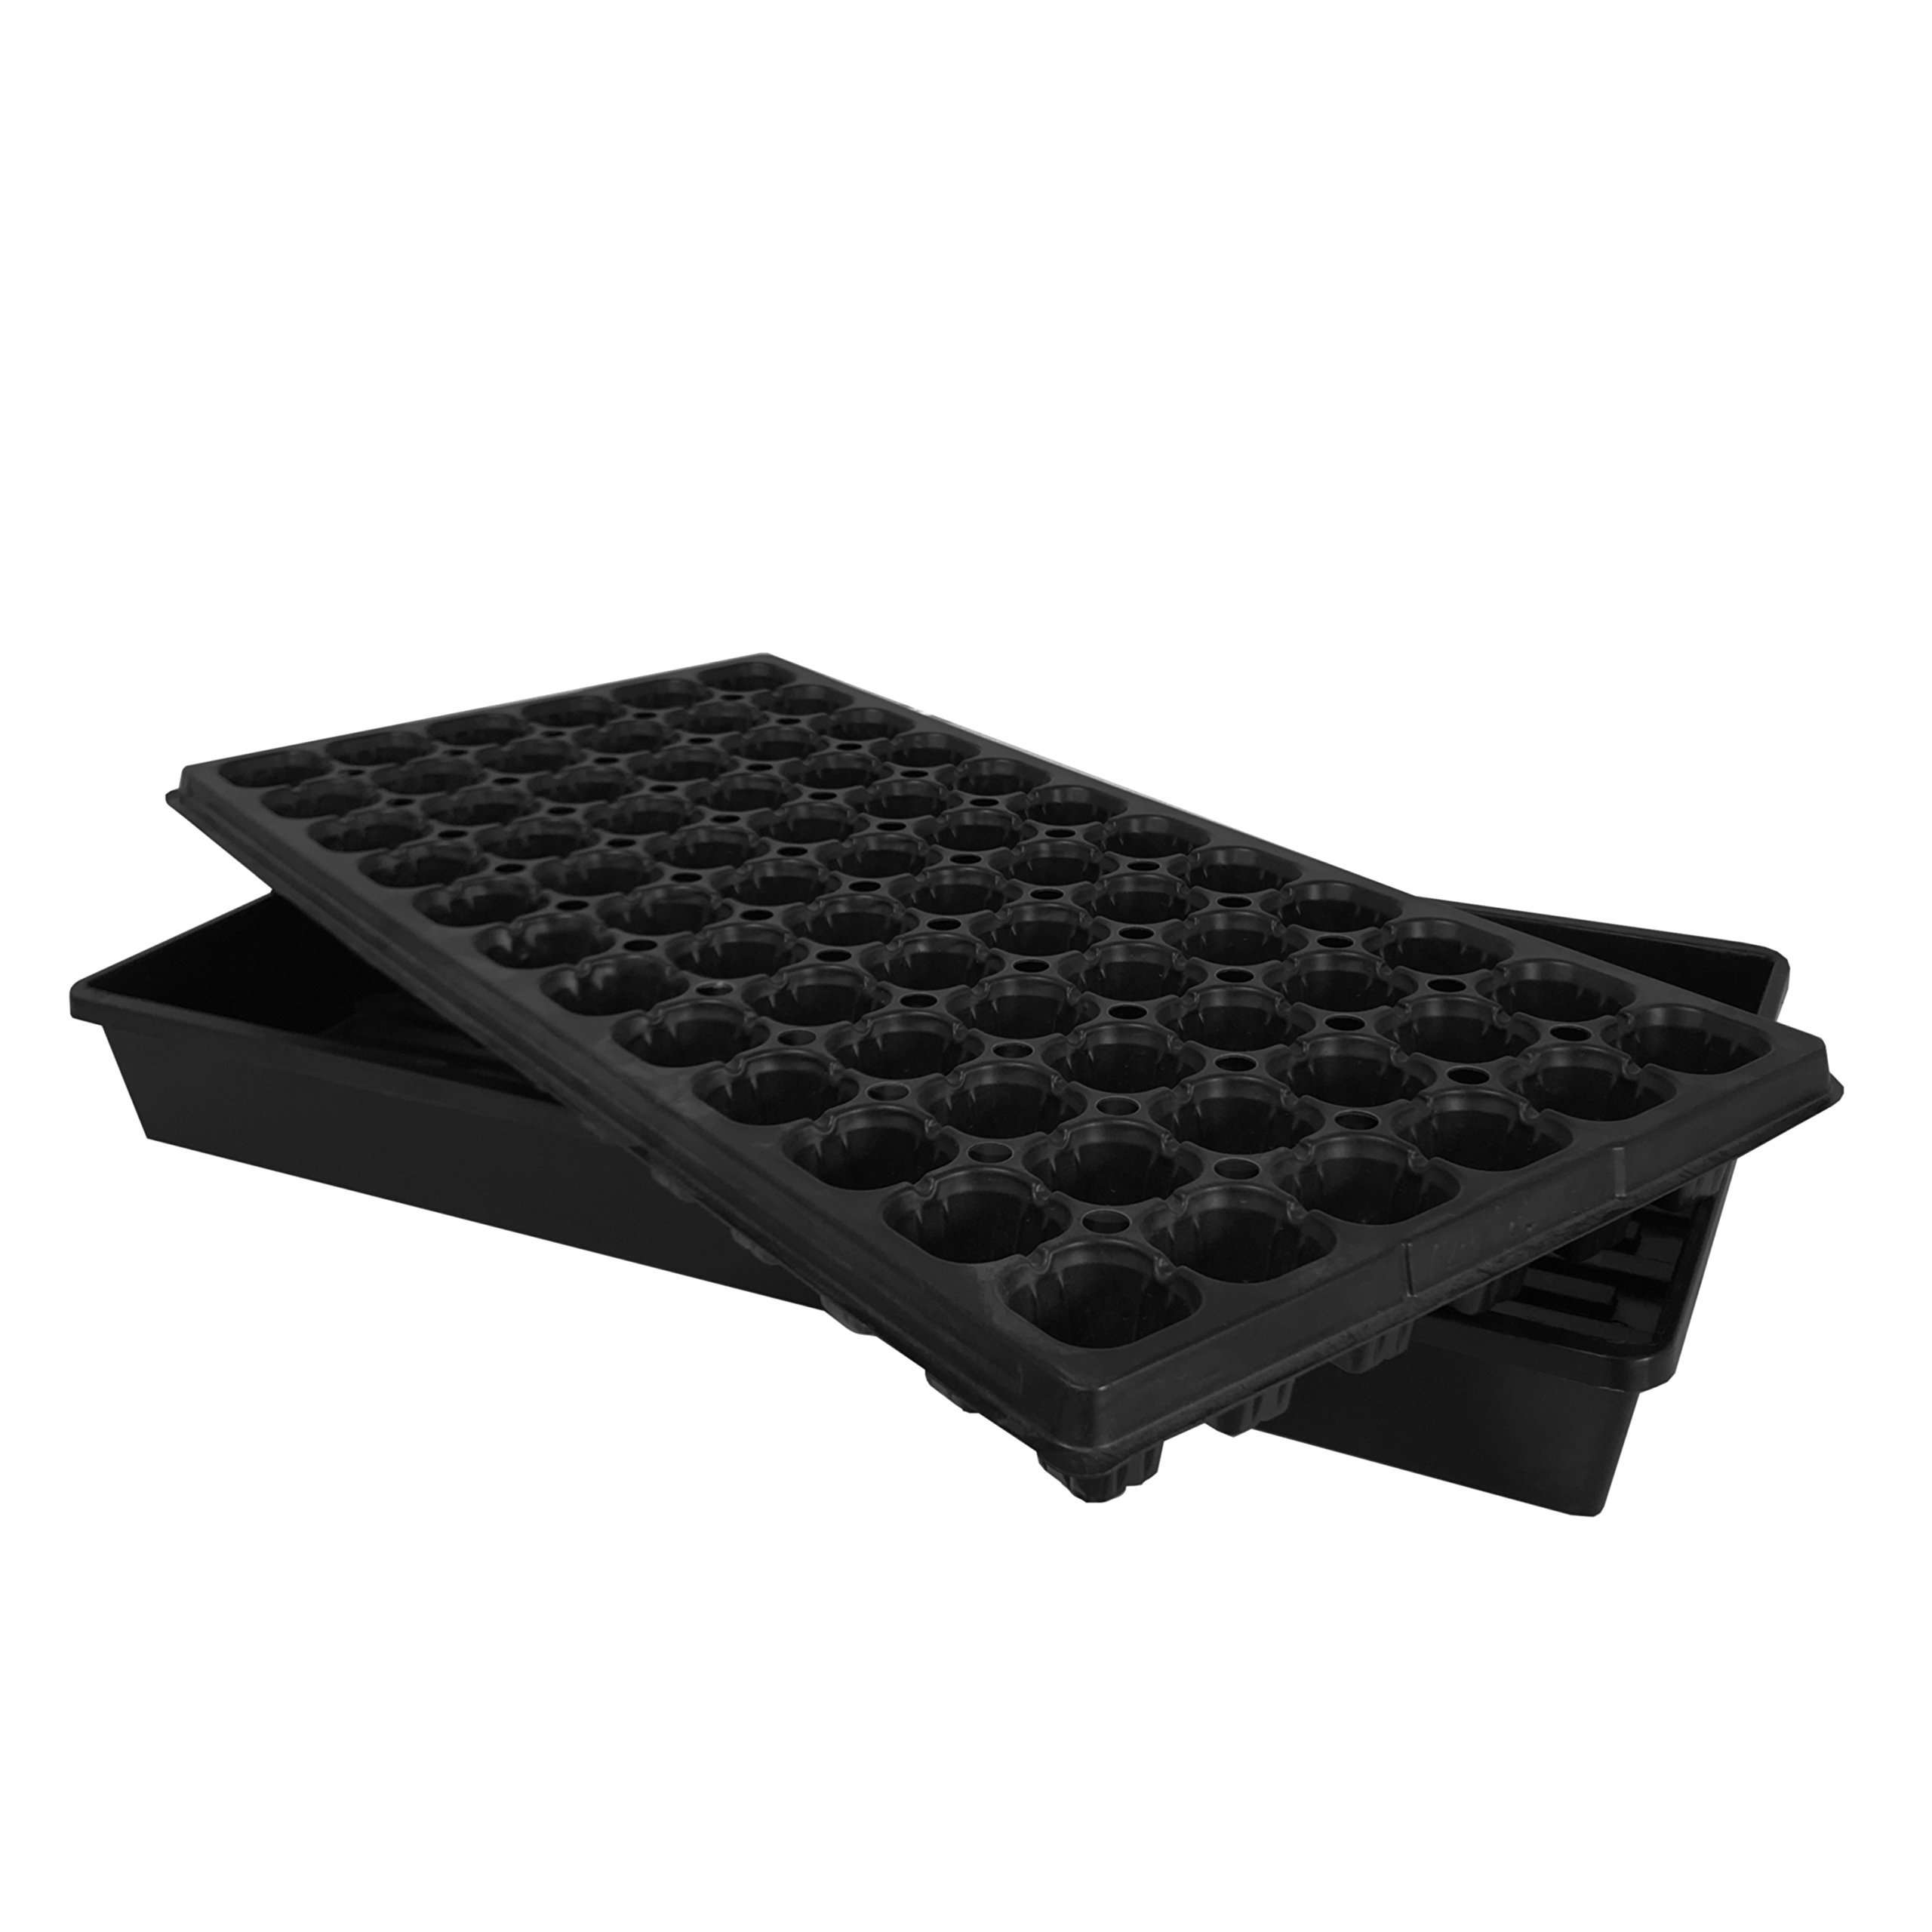 Oppolite 10-Pack 1020 Seeds Starter Tray Kit Flat Tray+72 Cell Tray for Indoor seeds Propagation (10-Pack) by Oppolite